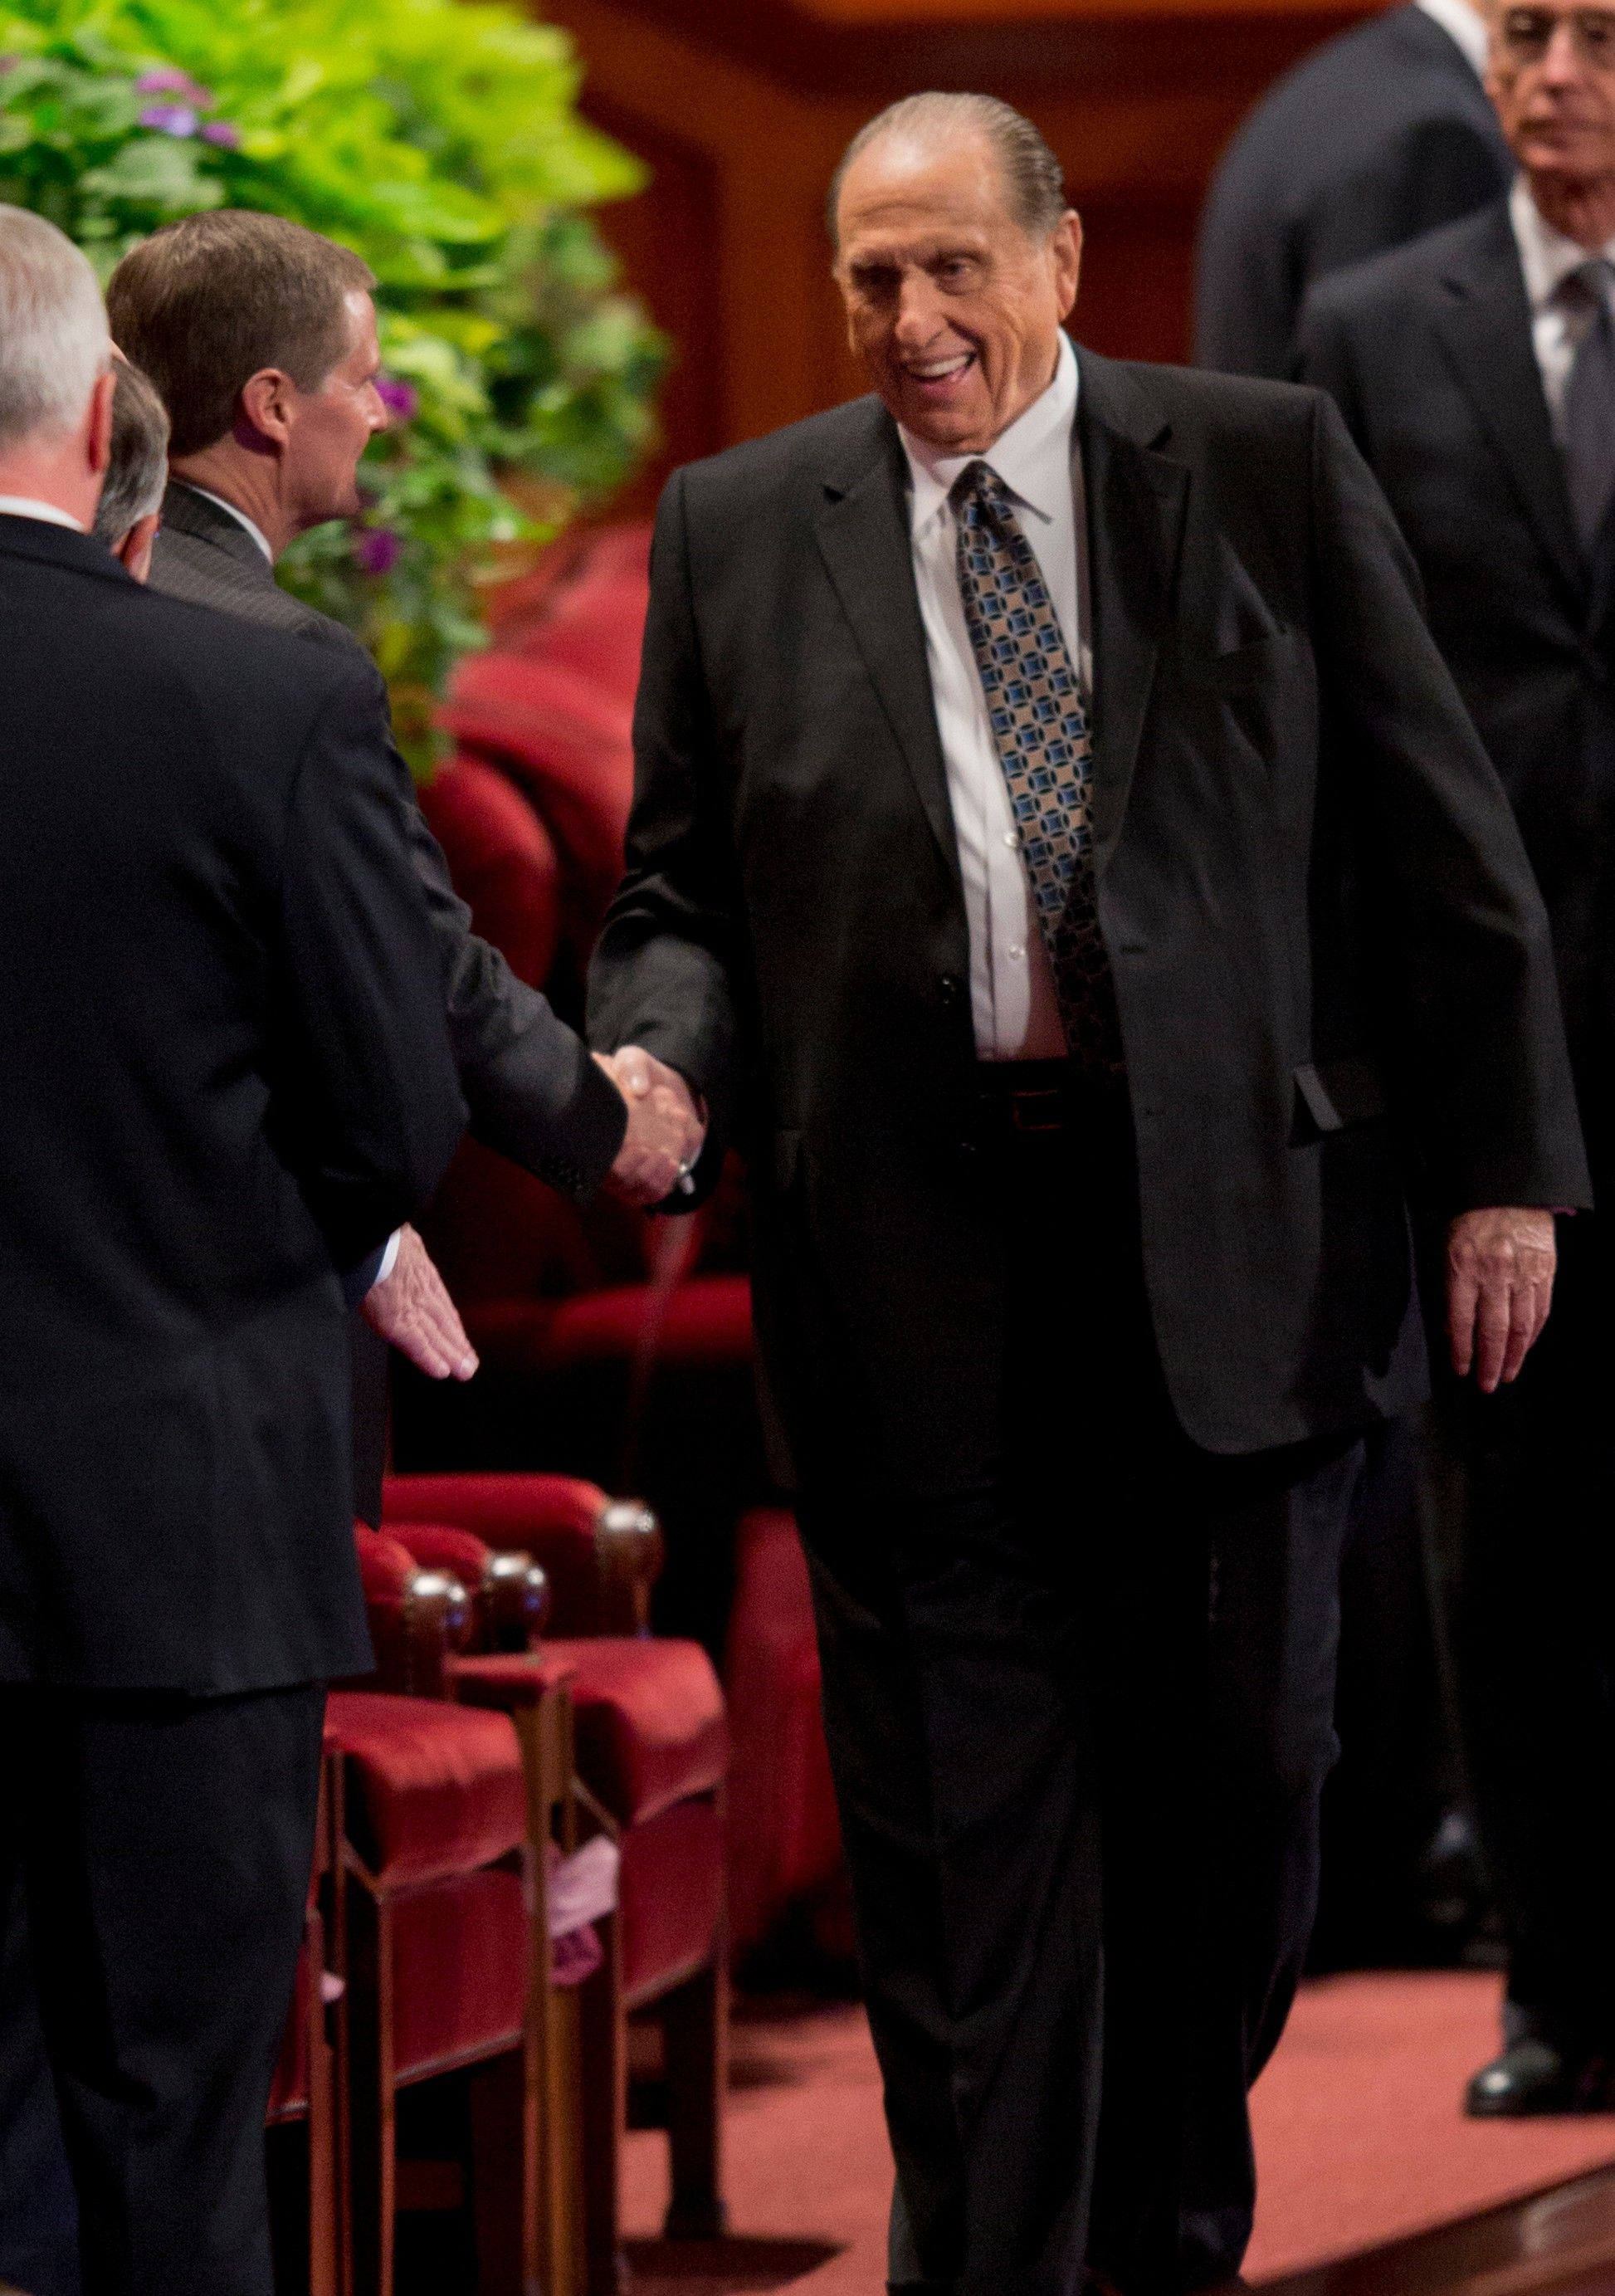 Thomas S. Monson greeting David A. Bednar in the Conference Center.